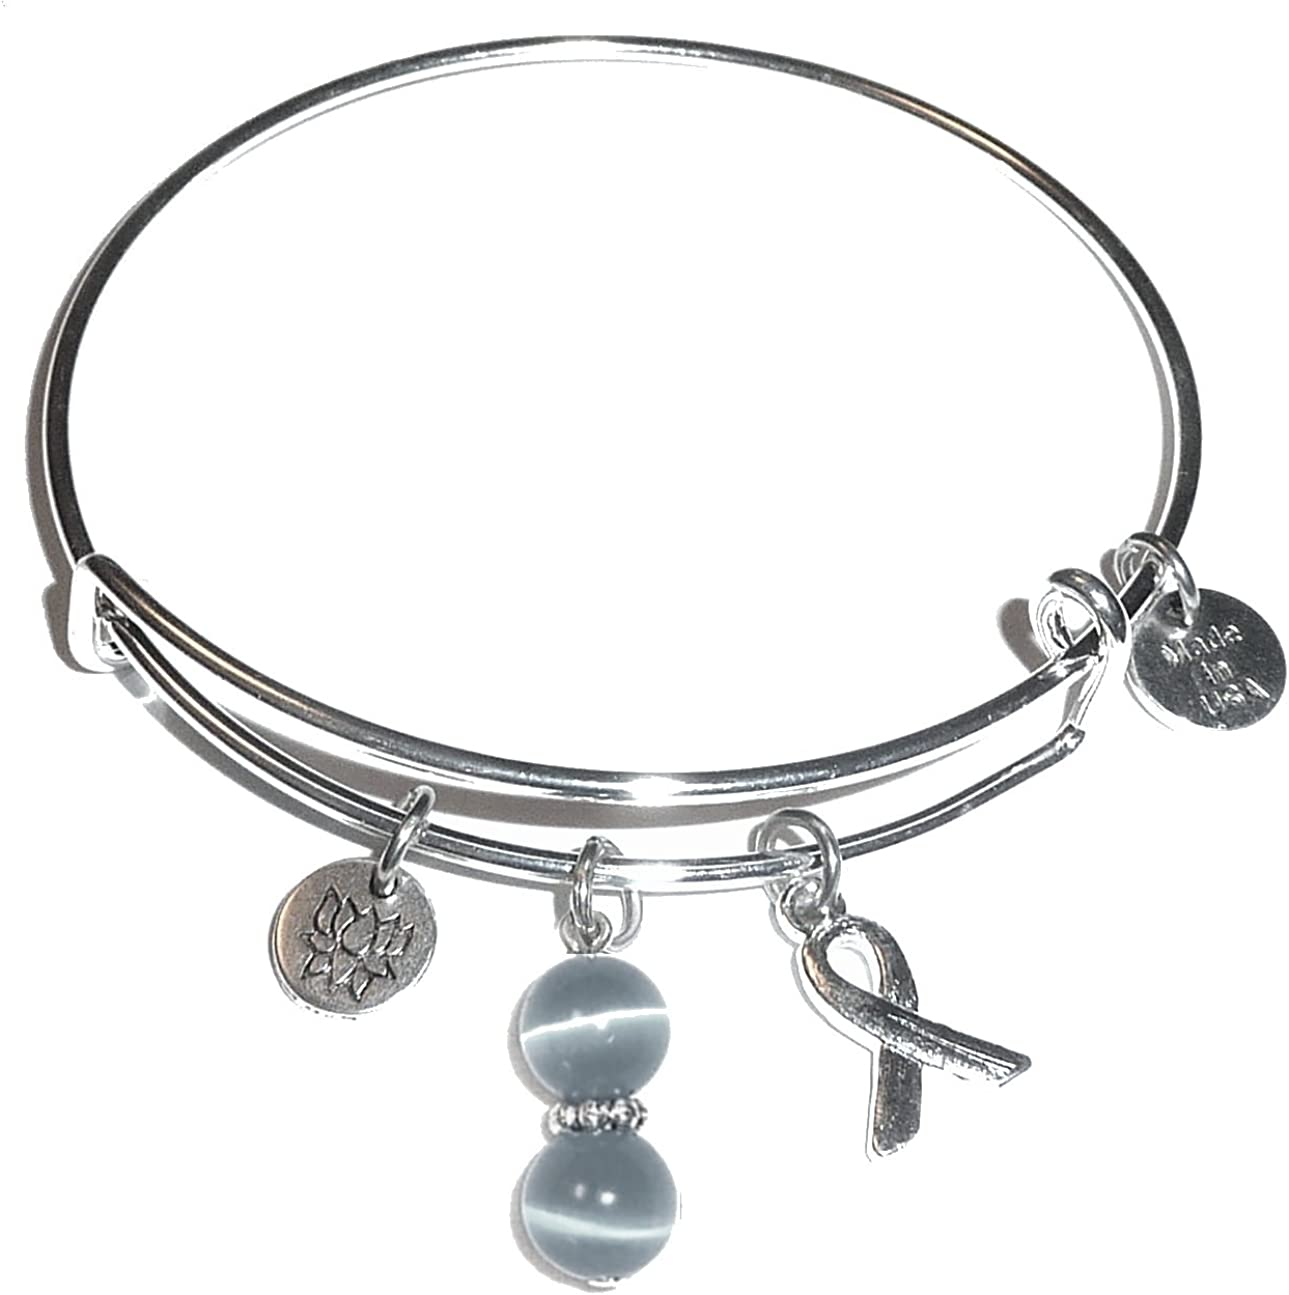 Hidden Hollow Beads Cancer Awareness (Hope for The Cure) Expandable Wire Women's Bangle Bracelet, Made in USA, Comes in a Gift Box!